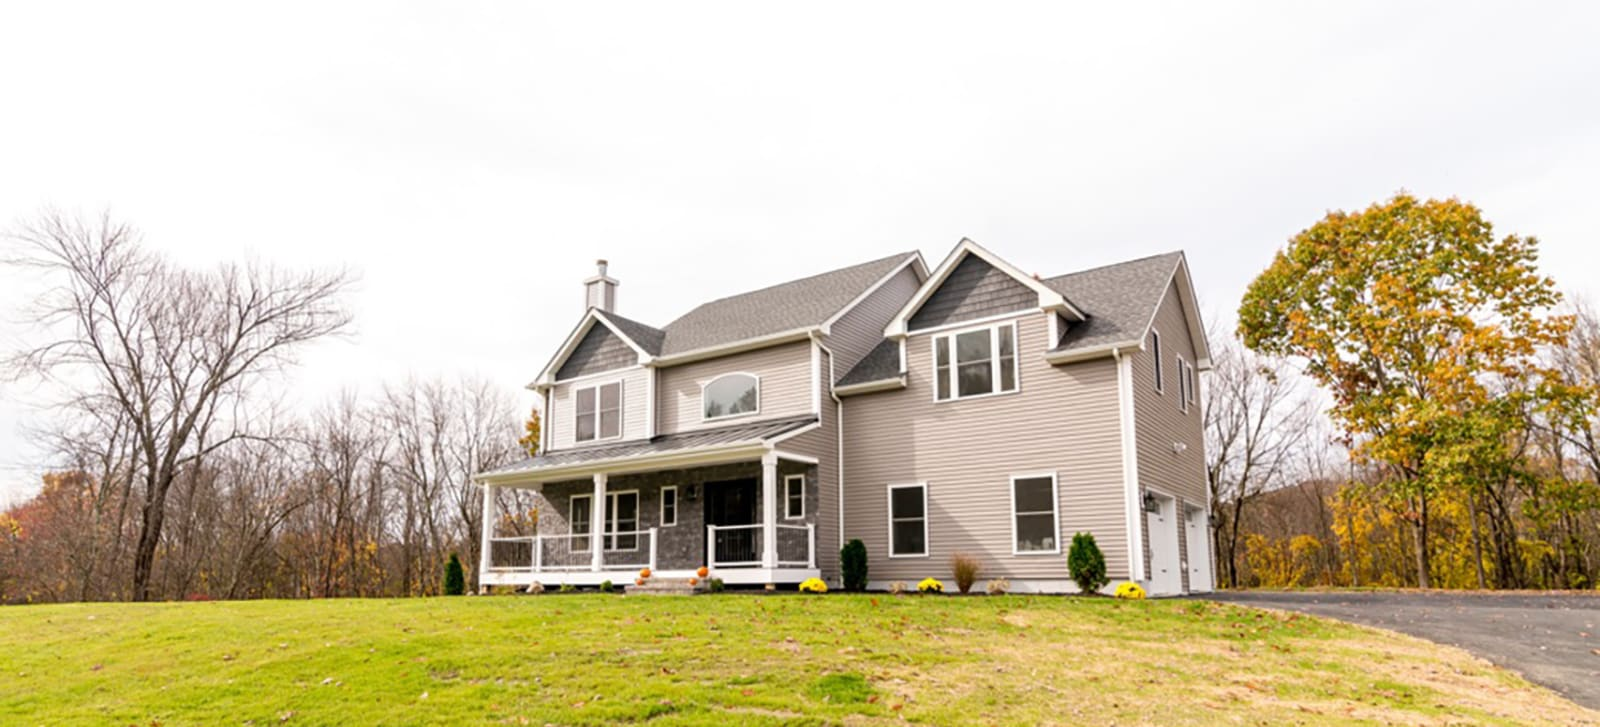 Find Luxury Real Estate in Pleasant Valley | Corcoran Country Living